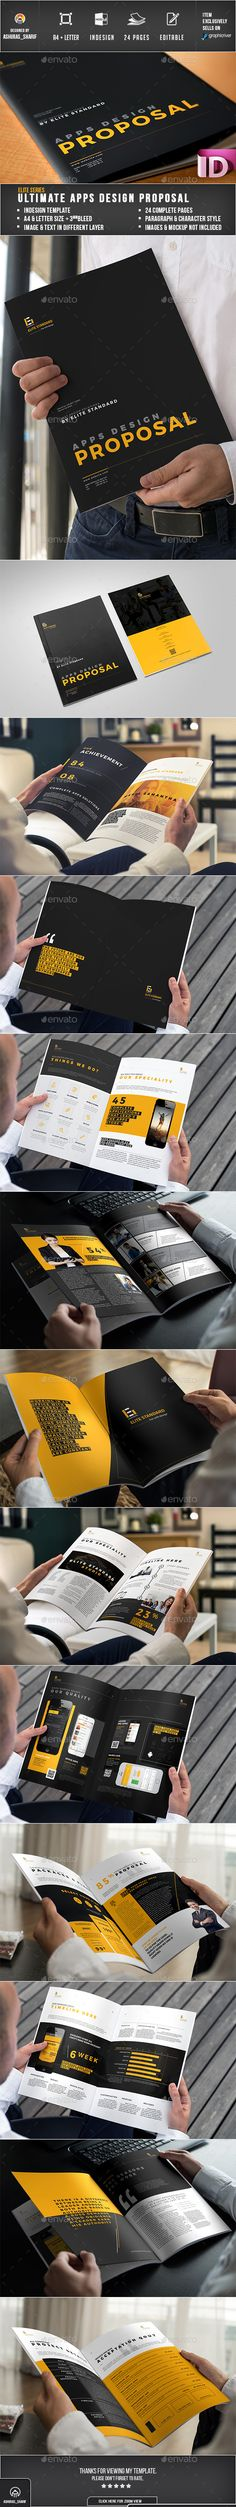 Proposal Template InDesign INDD Download here httpgraphicrivernet